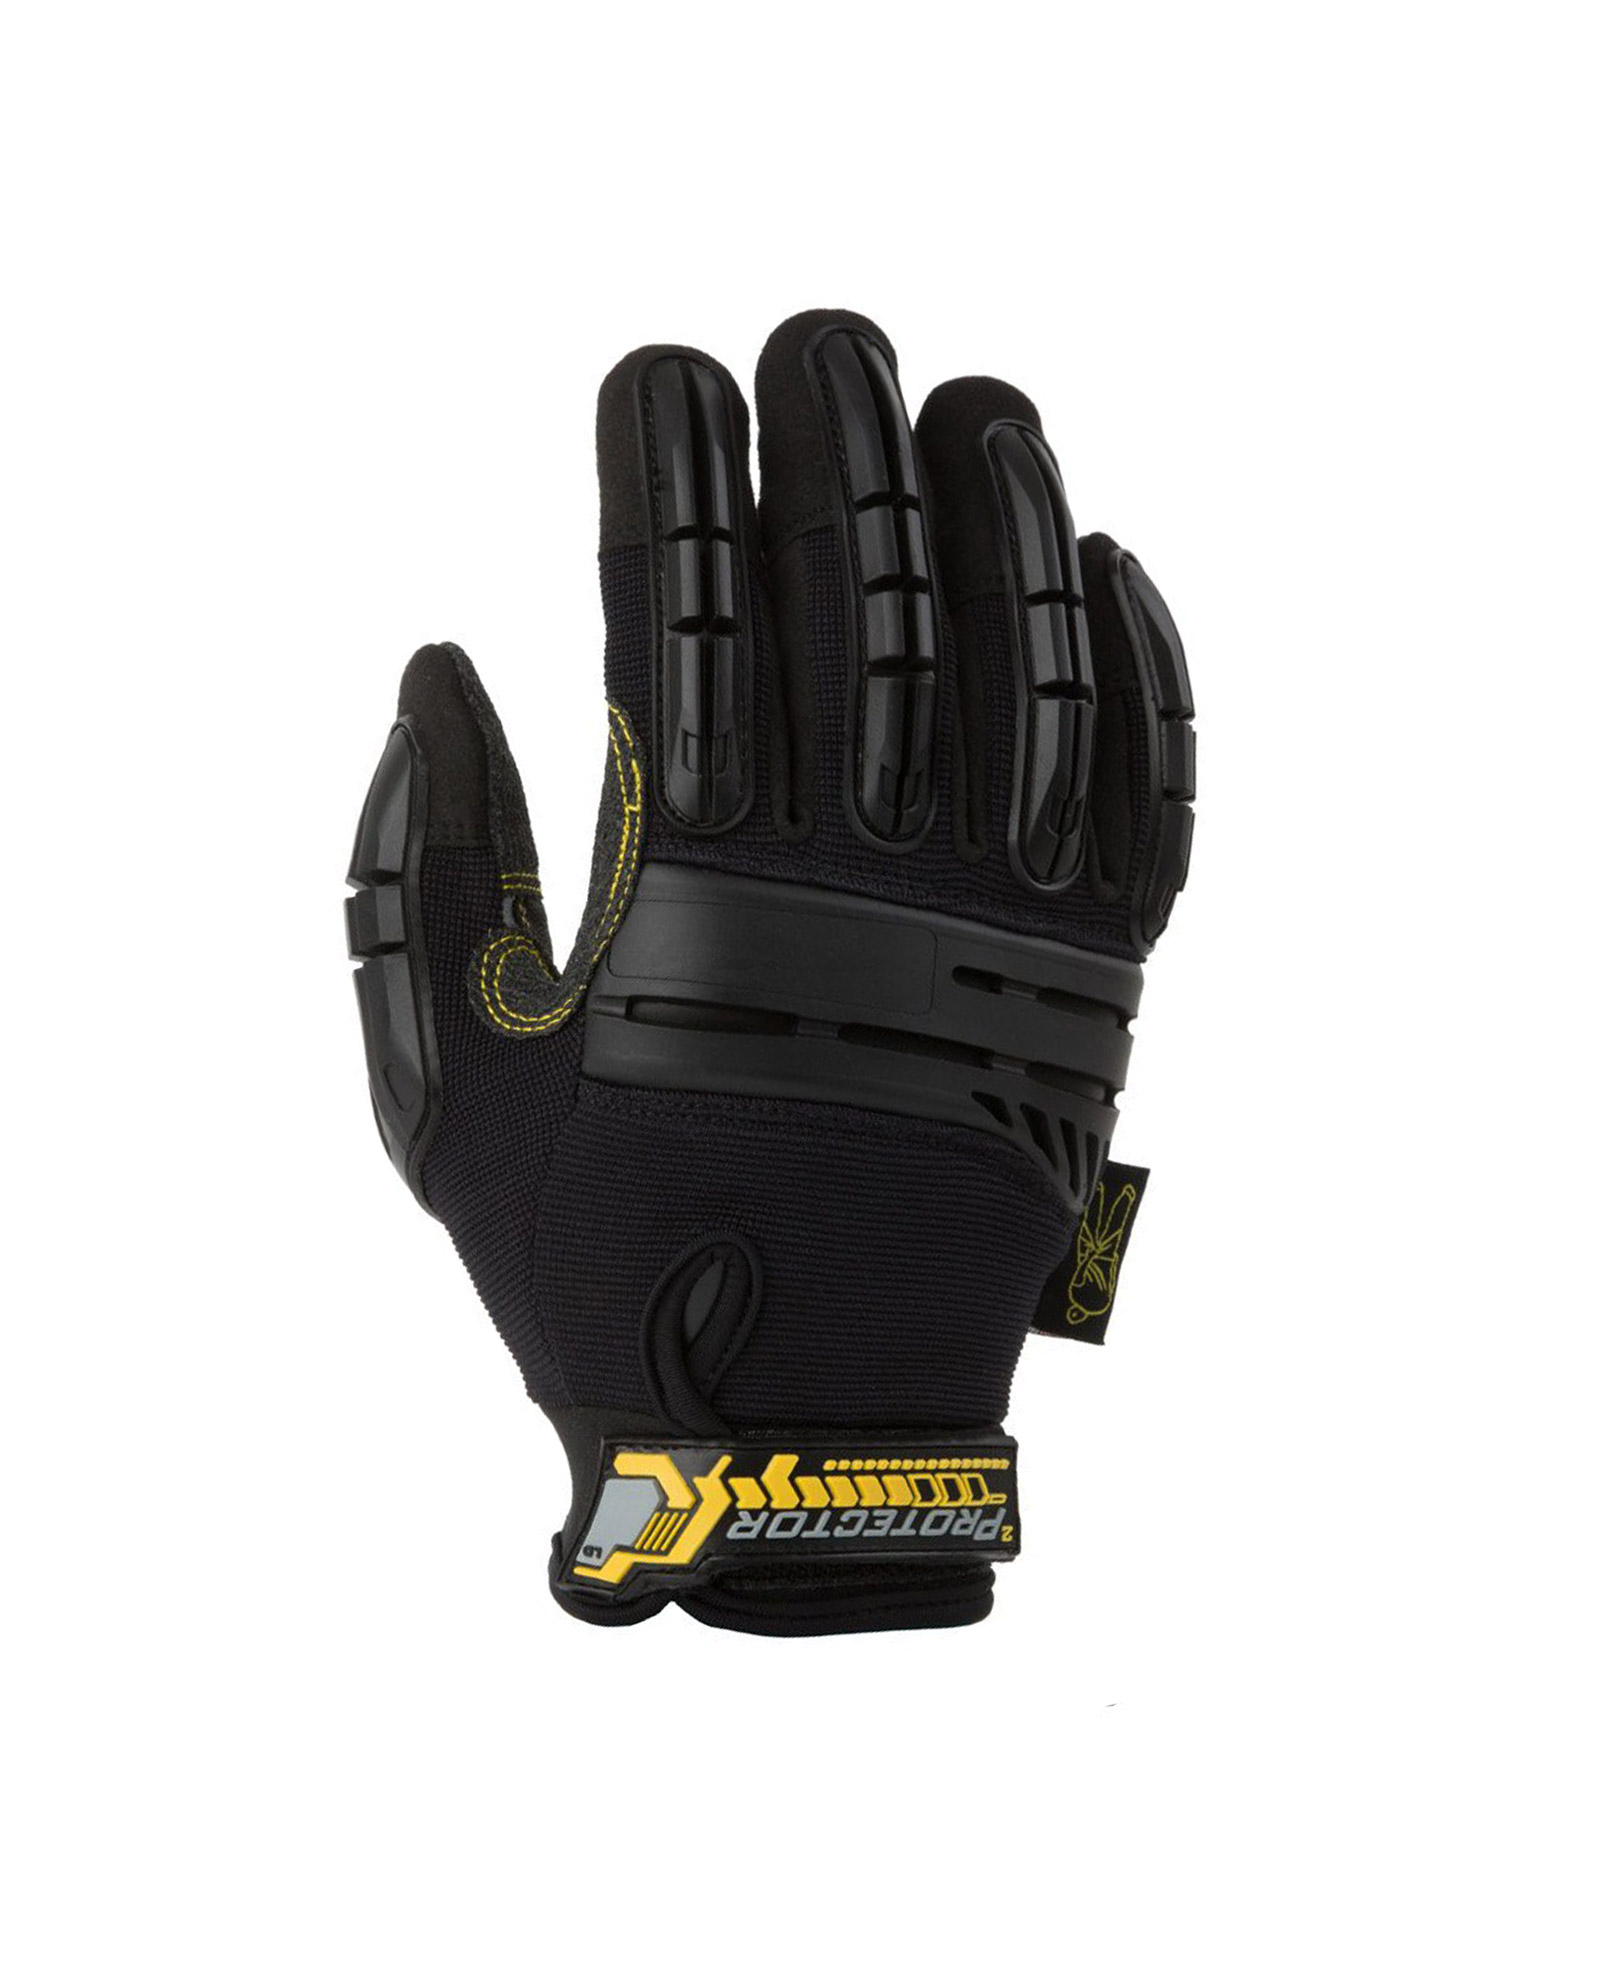 Dirty Rigger Glove Dty Protec Protector™ 2.0 Heavy Duty Rigger Glove